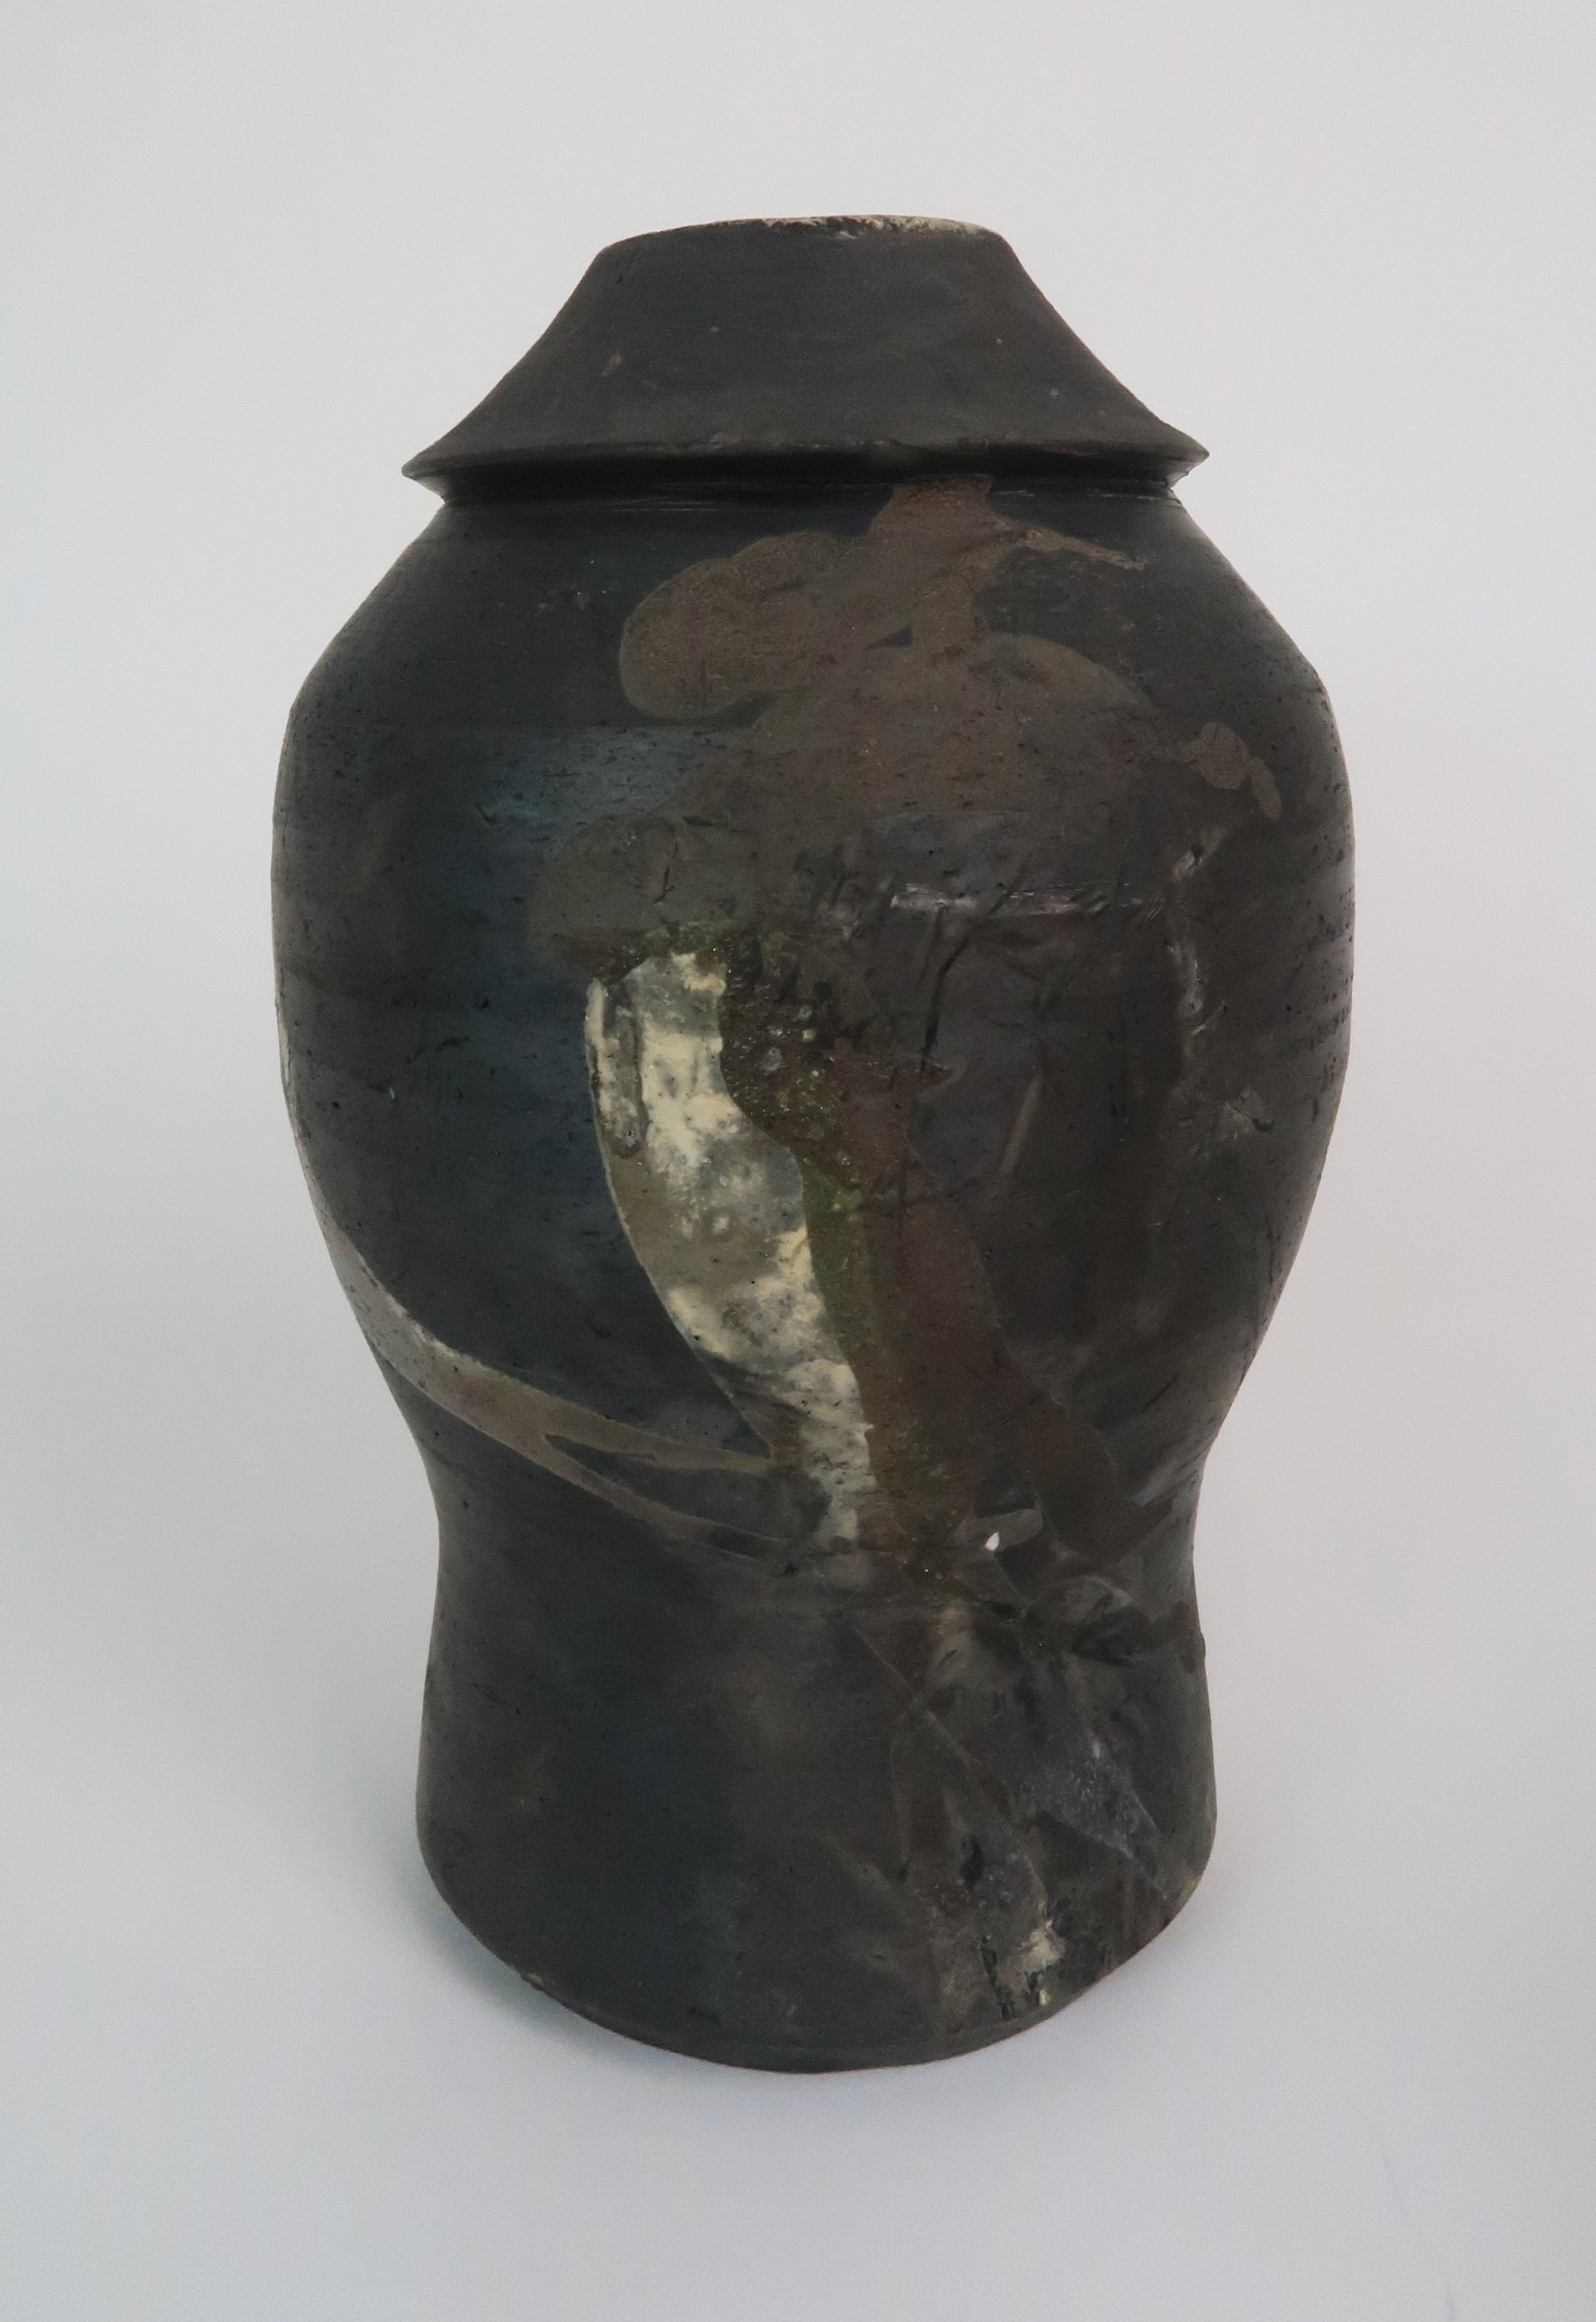 GEORGE SHANKS (1940-2000) - A COLLECTION OF STUDIO POTTERY including a glazed tall vase, 33cm - Image 11 of 15